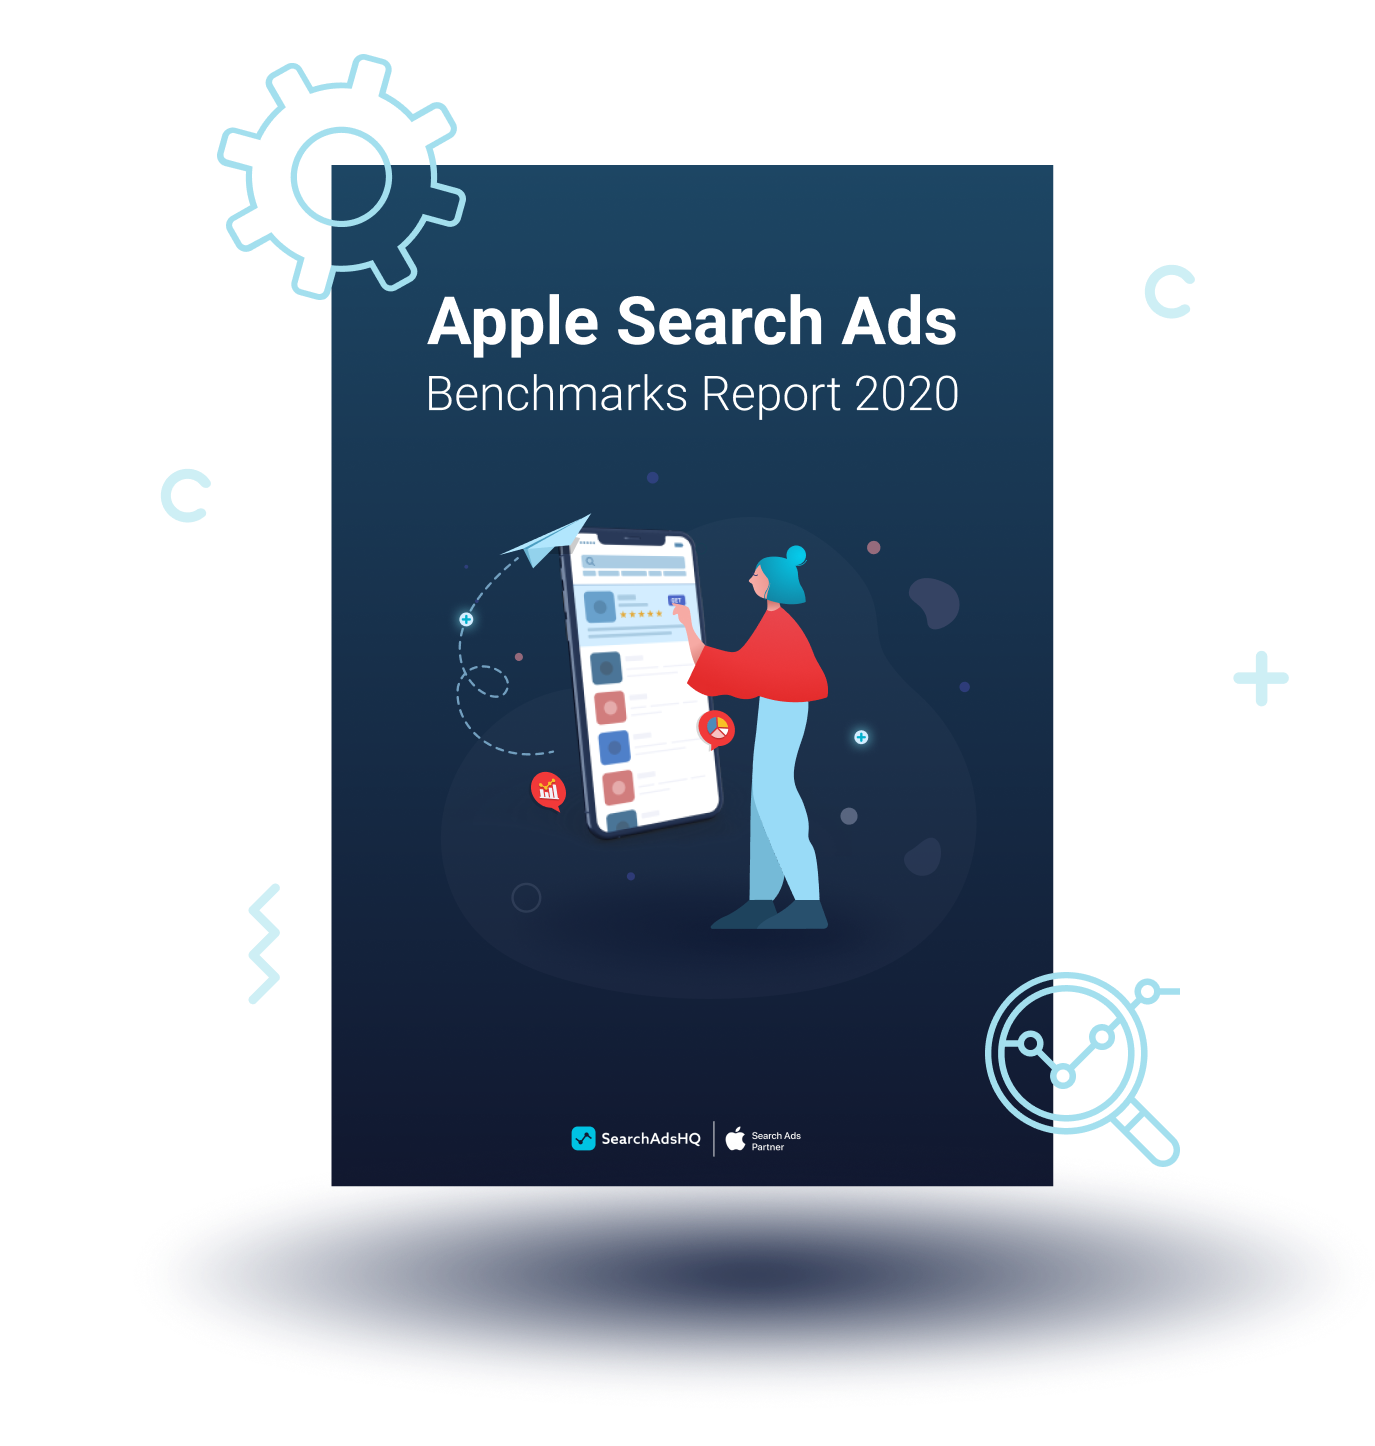 Apple Search Ads Benchmarks Report 2020